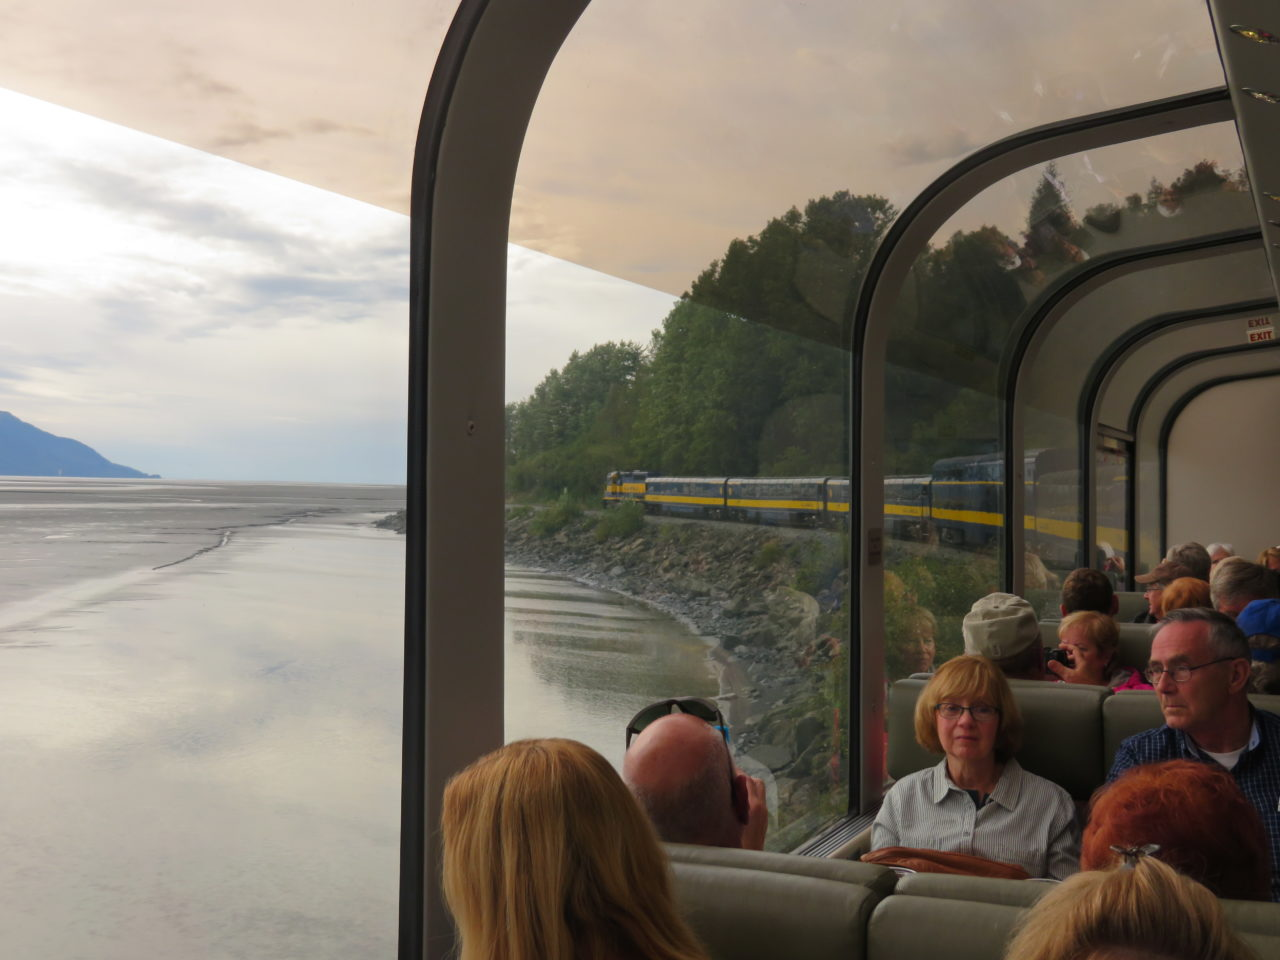 Aboard Princess Rail and its glass-domed panoramic rail cars during our Alaska Cruise with Princess Cruises